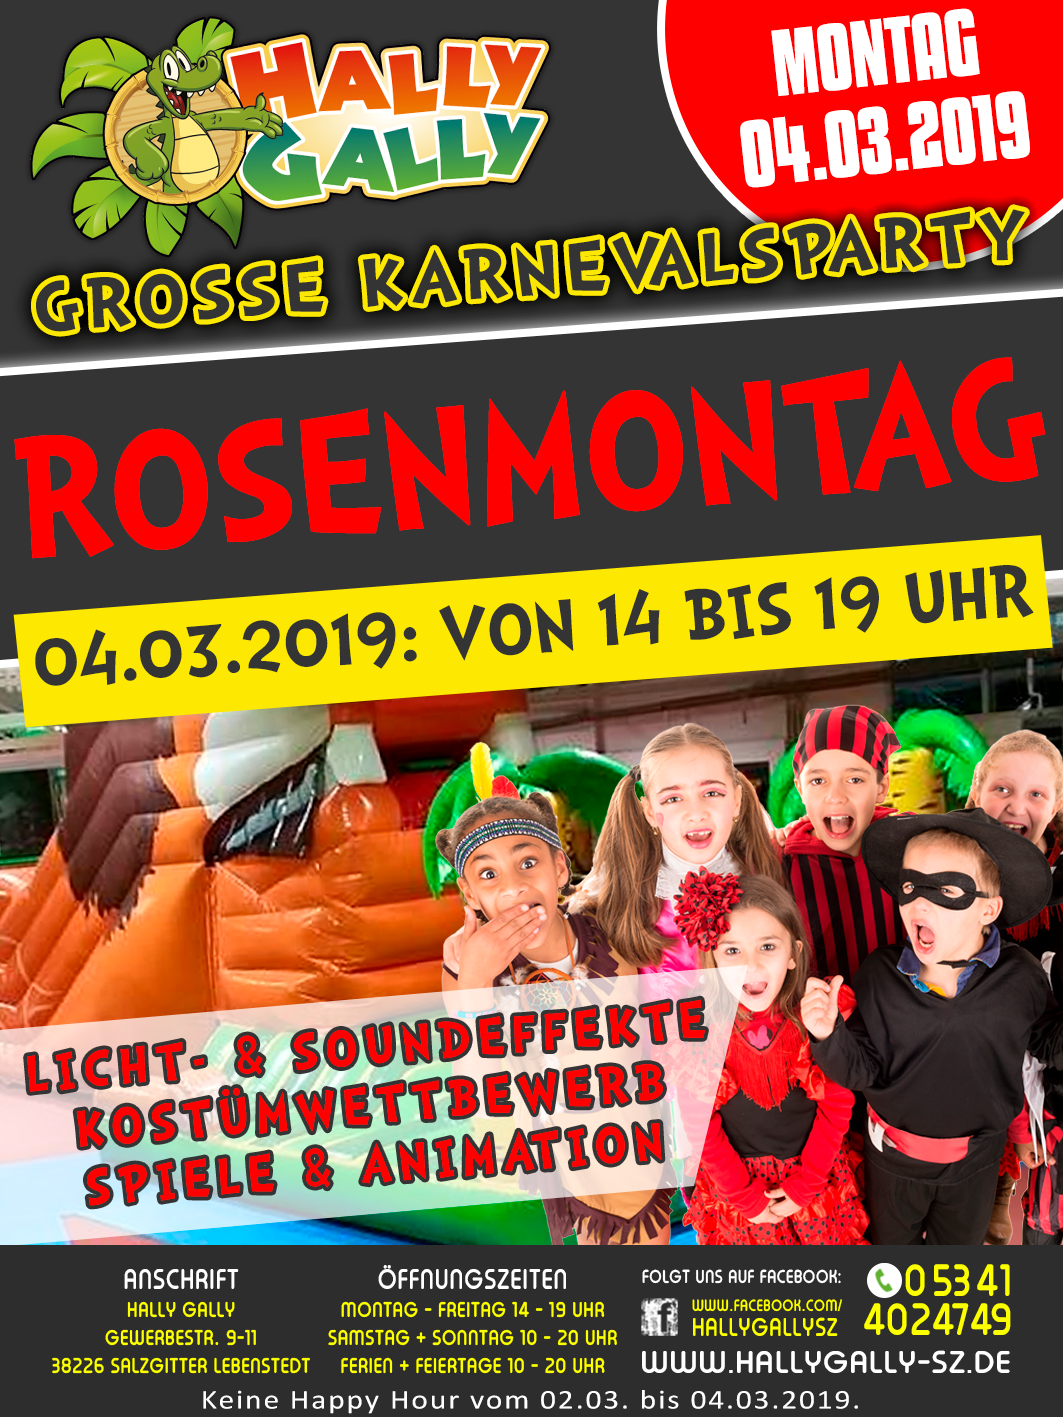 Hally-Gally-Karneva---Facebook-Rosenmontag